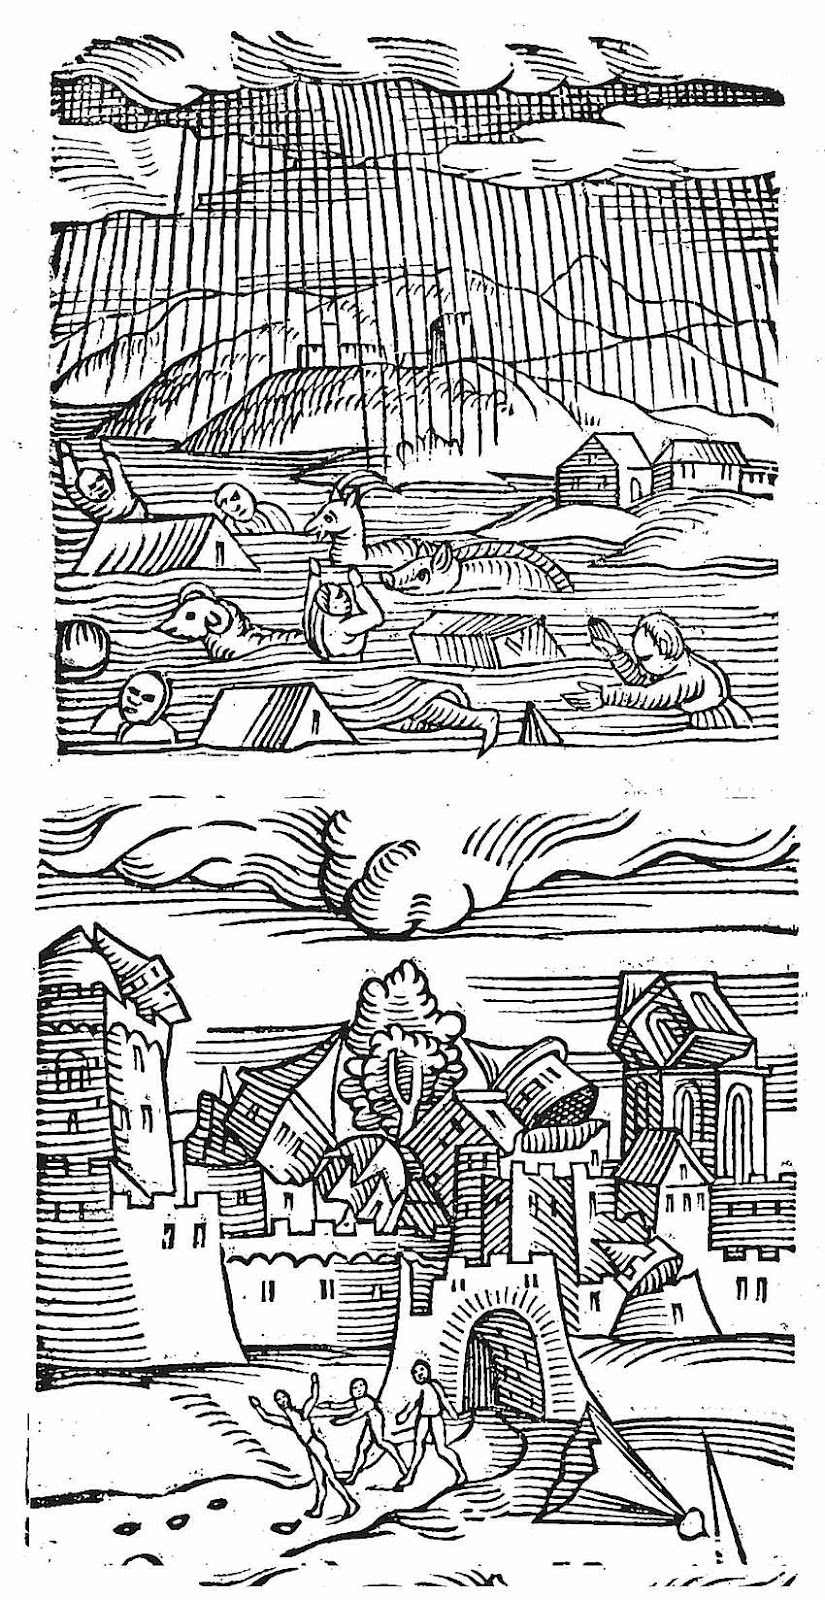 1557 illustrations of flood and Earthquake, with people and rats fleeing